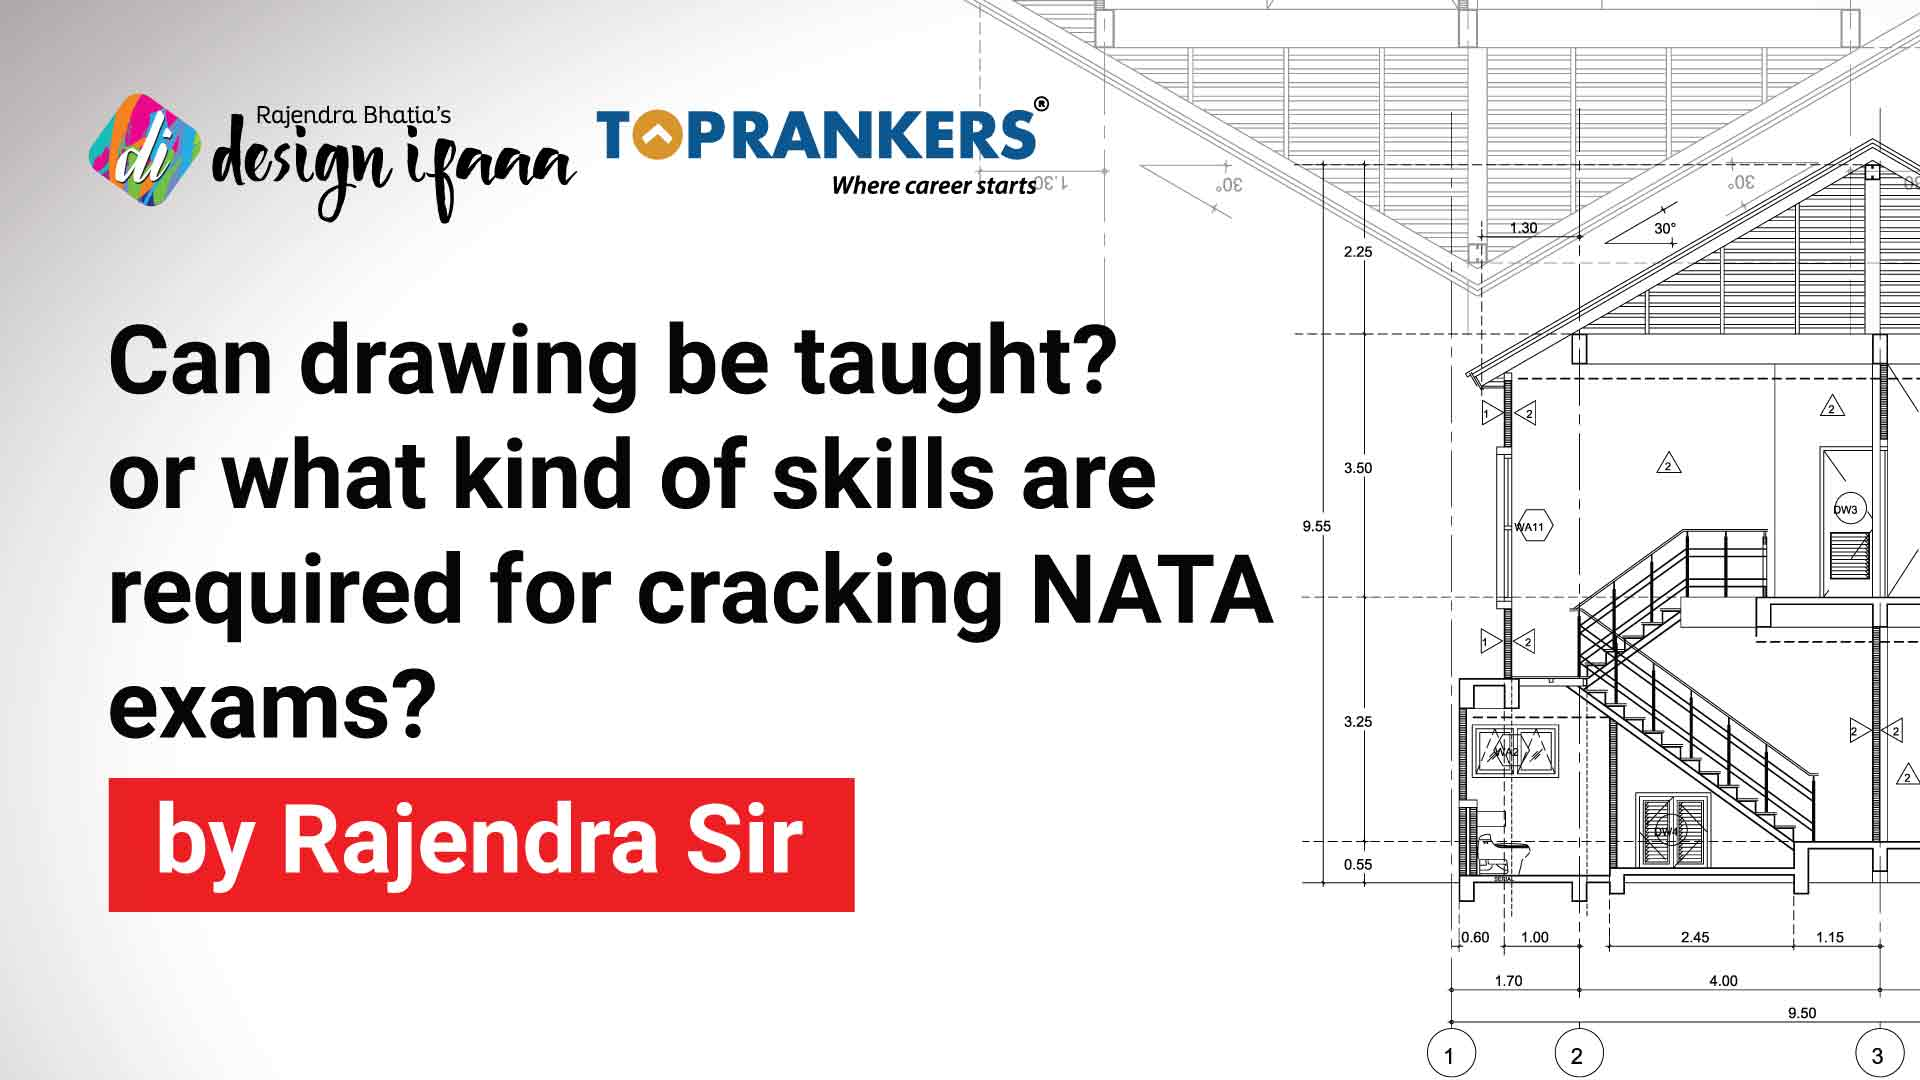 Can drawing be taught? or what kind of skills are required for cracking NATA exams? by Rajendra Sir